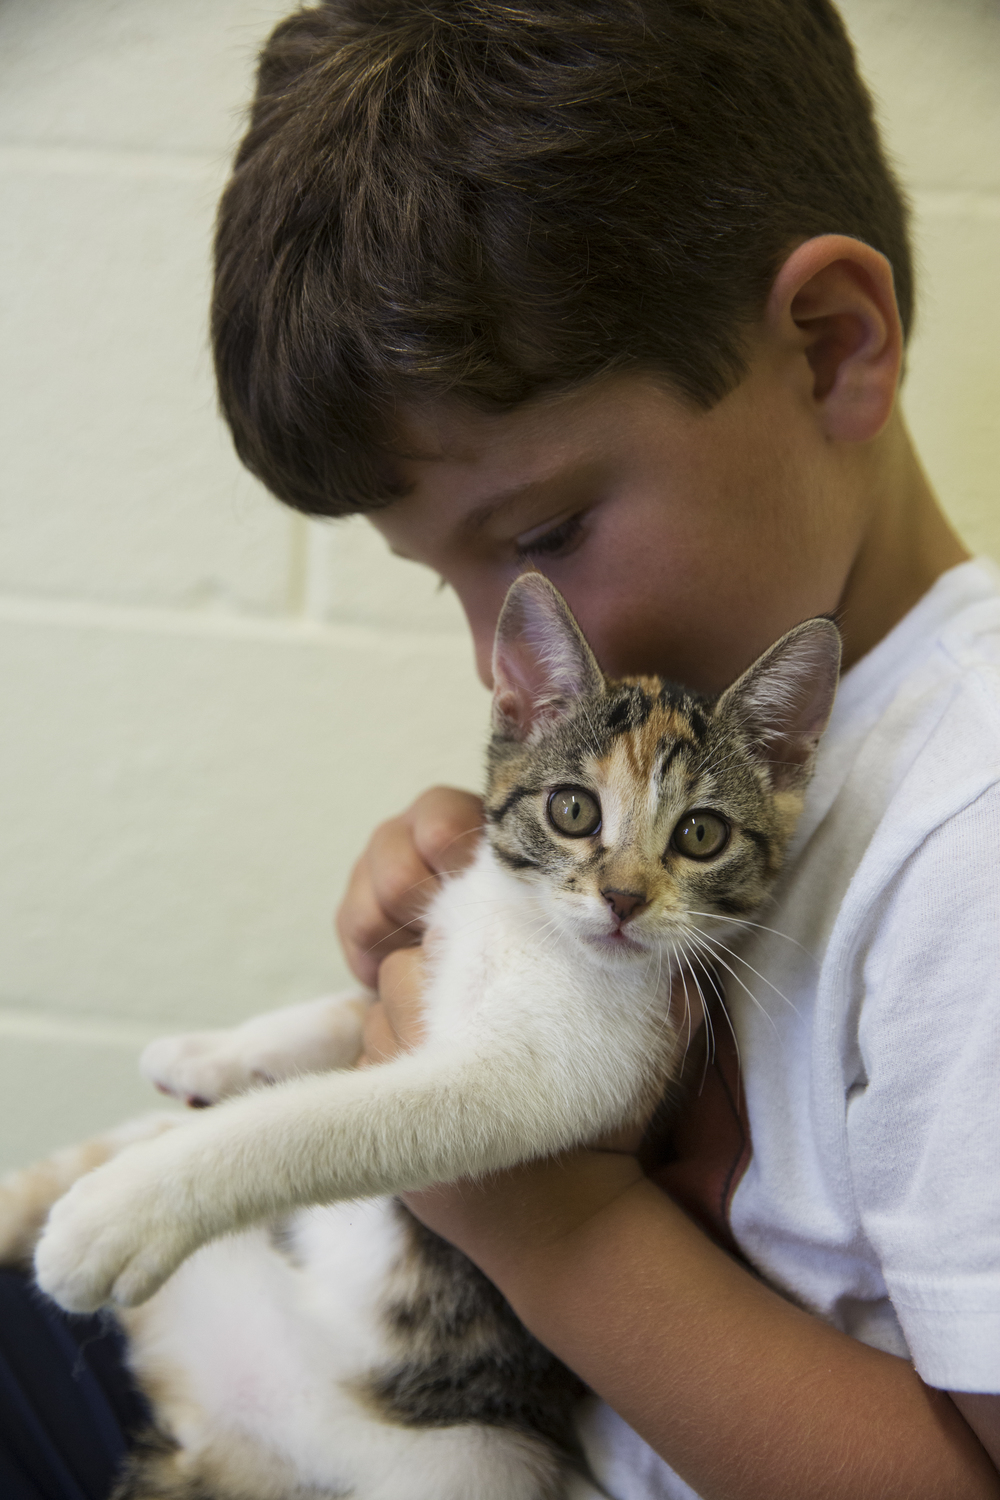 Lucas Bermudez, 5, of Naples, pets kittens in one of the meeting rooms at Humane Society Naples on June 23, 2016 in Naples, Florida.